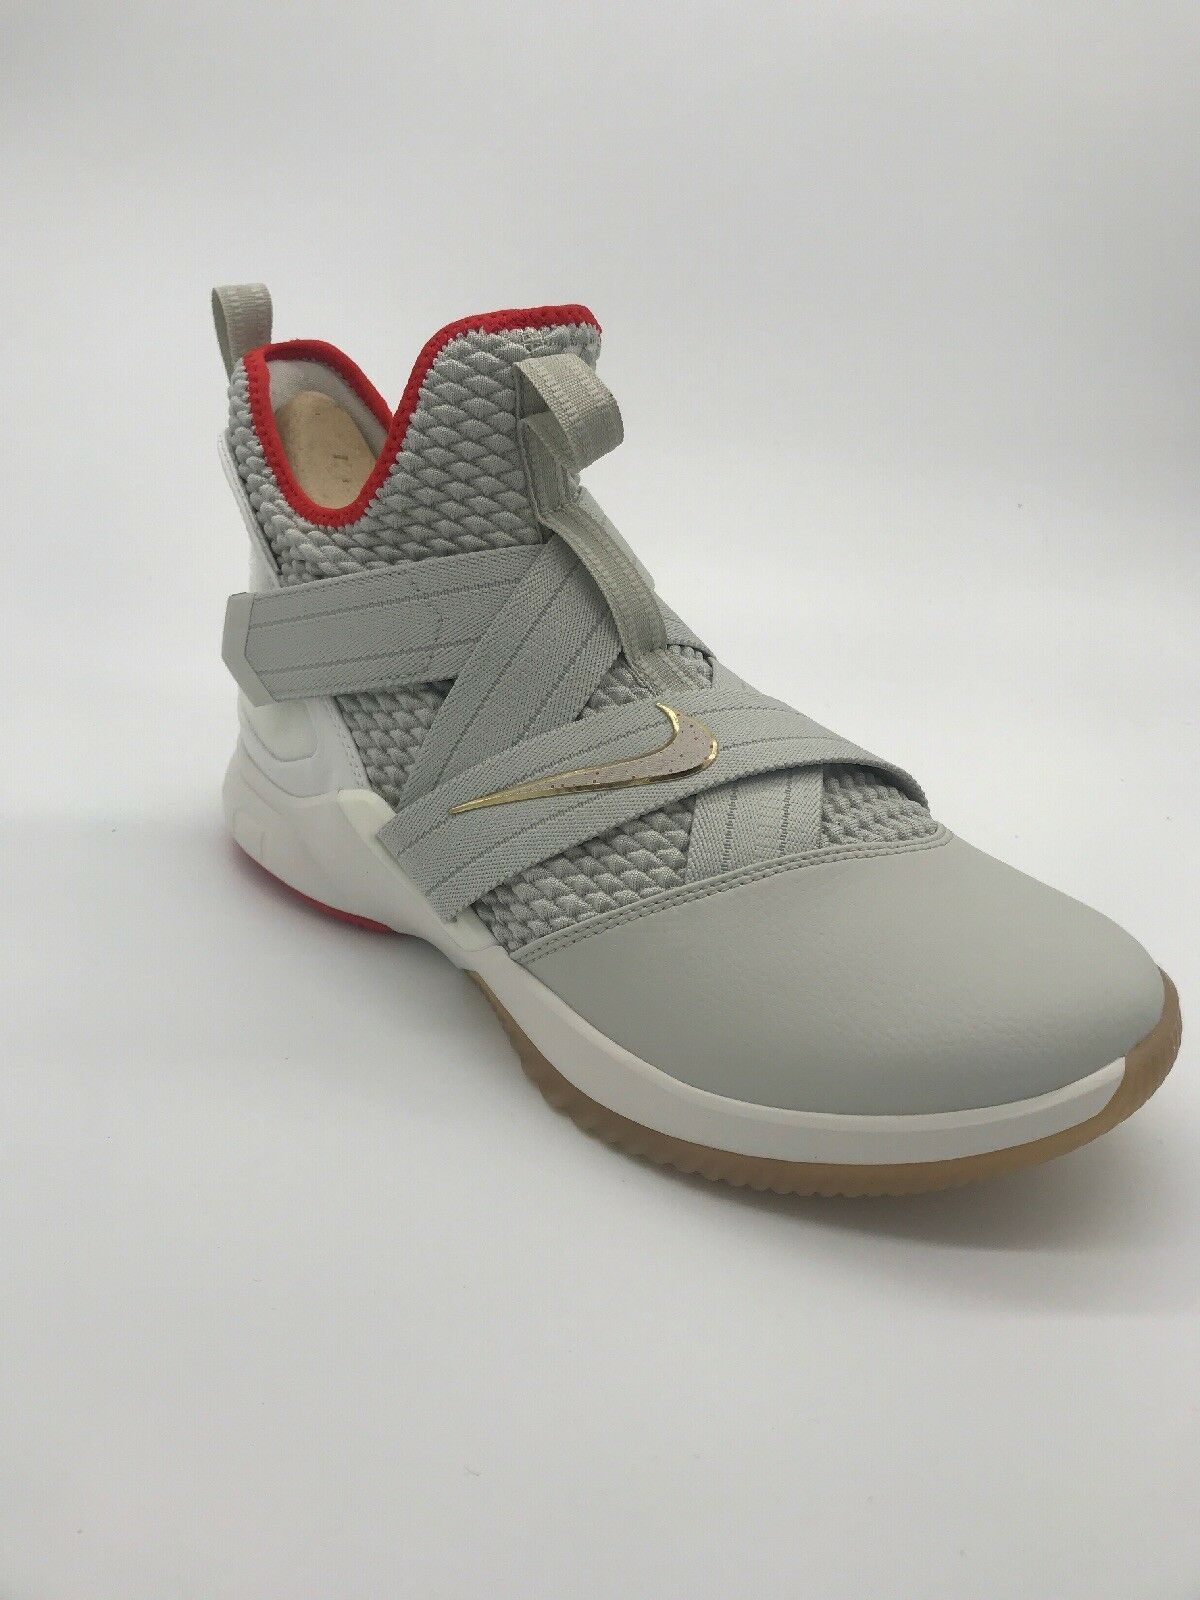 Nike Lebron Soldier XII AO2609 002 Mens Red White Footwear Size 10.5 Basketball